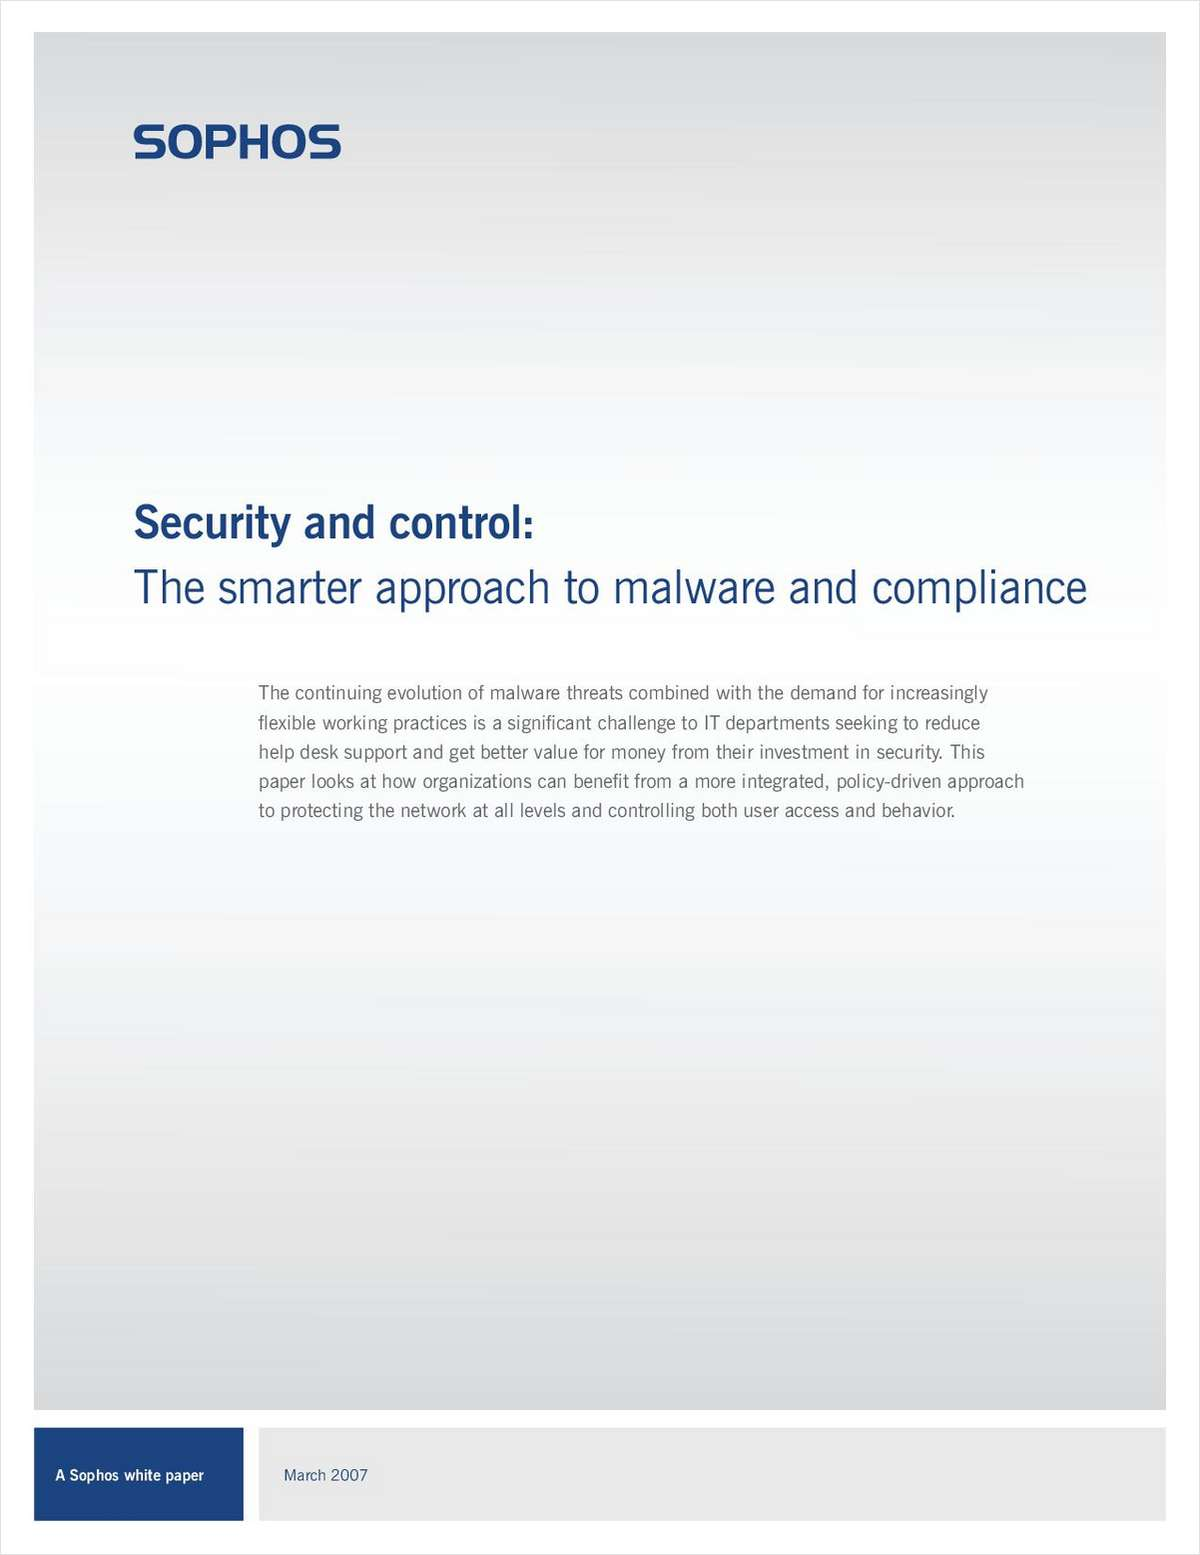 Security and Control: The Smarter Approach to Malware and Compliance